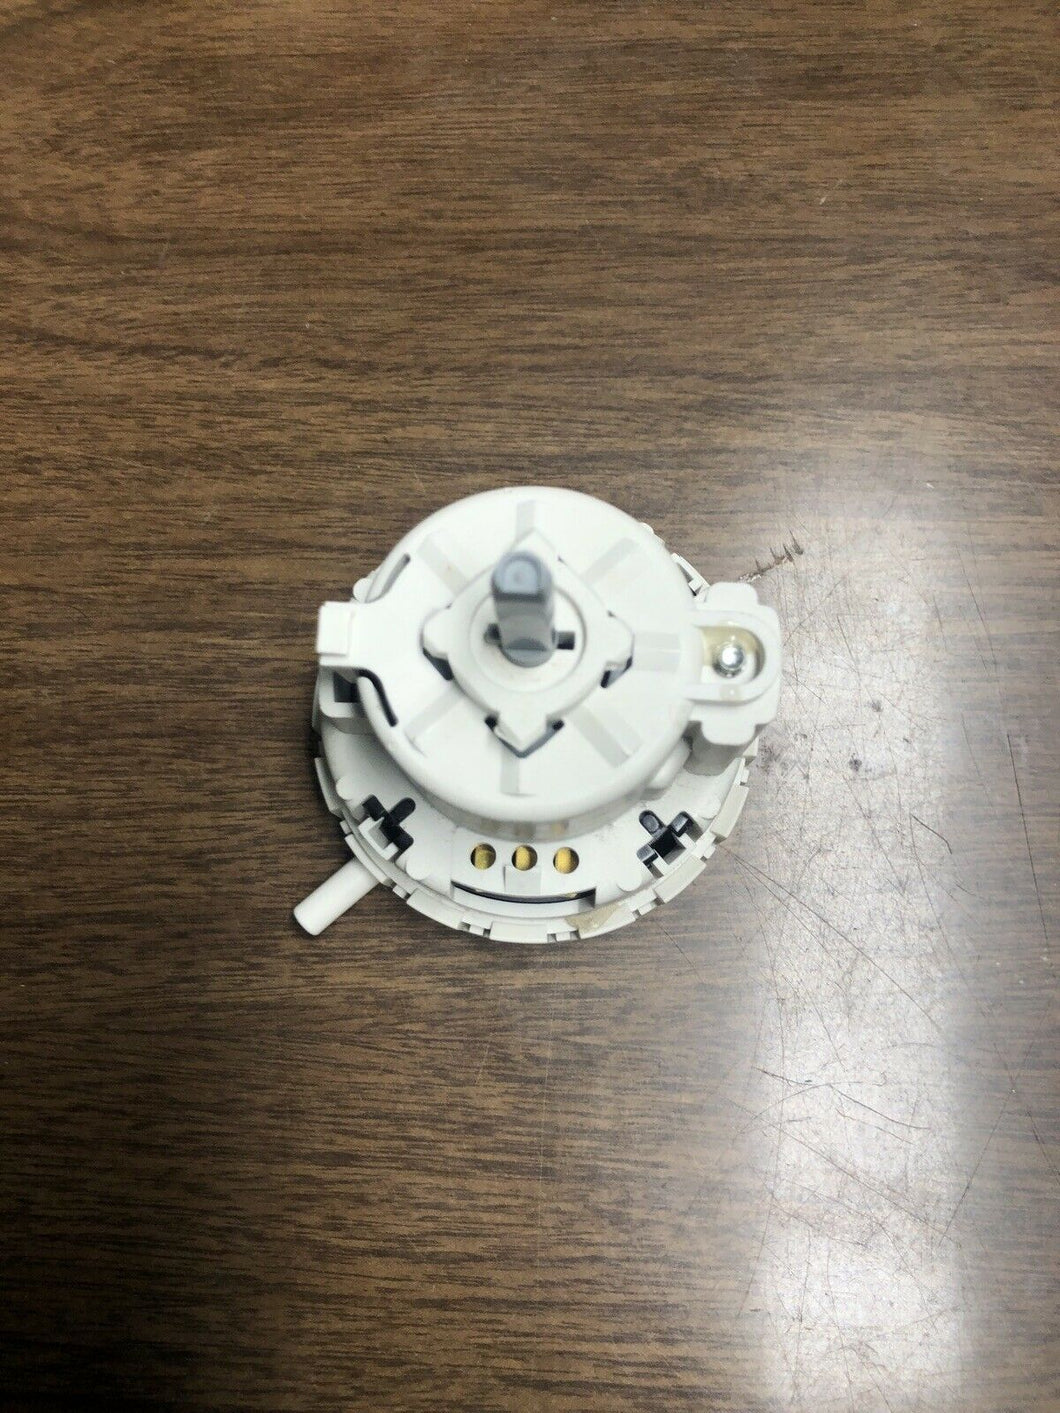 WHIRLPOOL KENMORE Washer Water Level Switch 3366845 W10339326 | AS Box 137